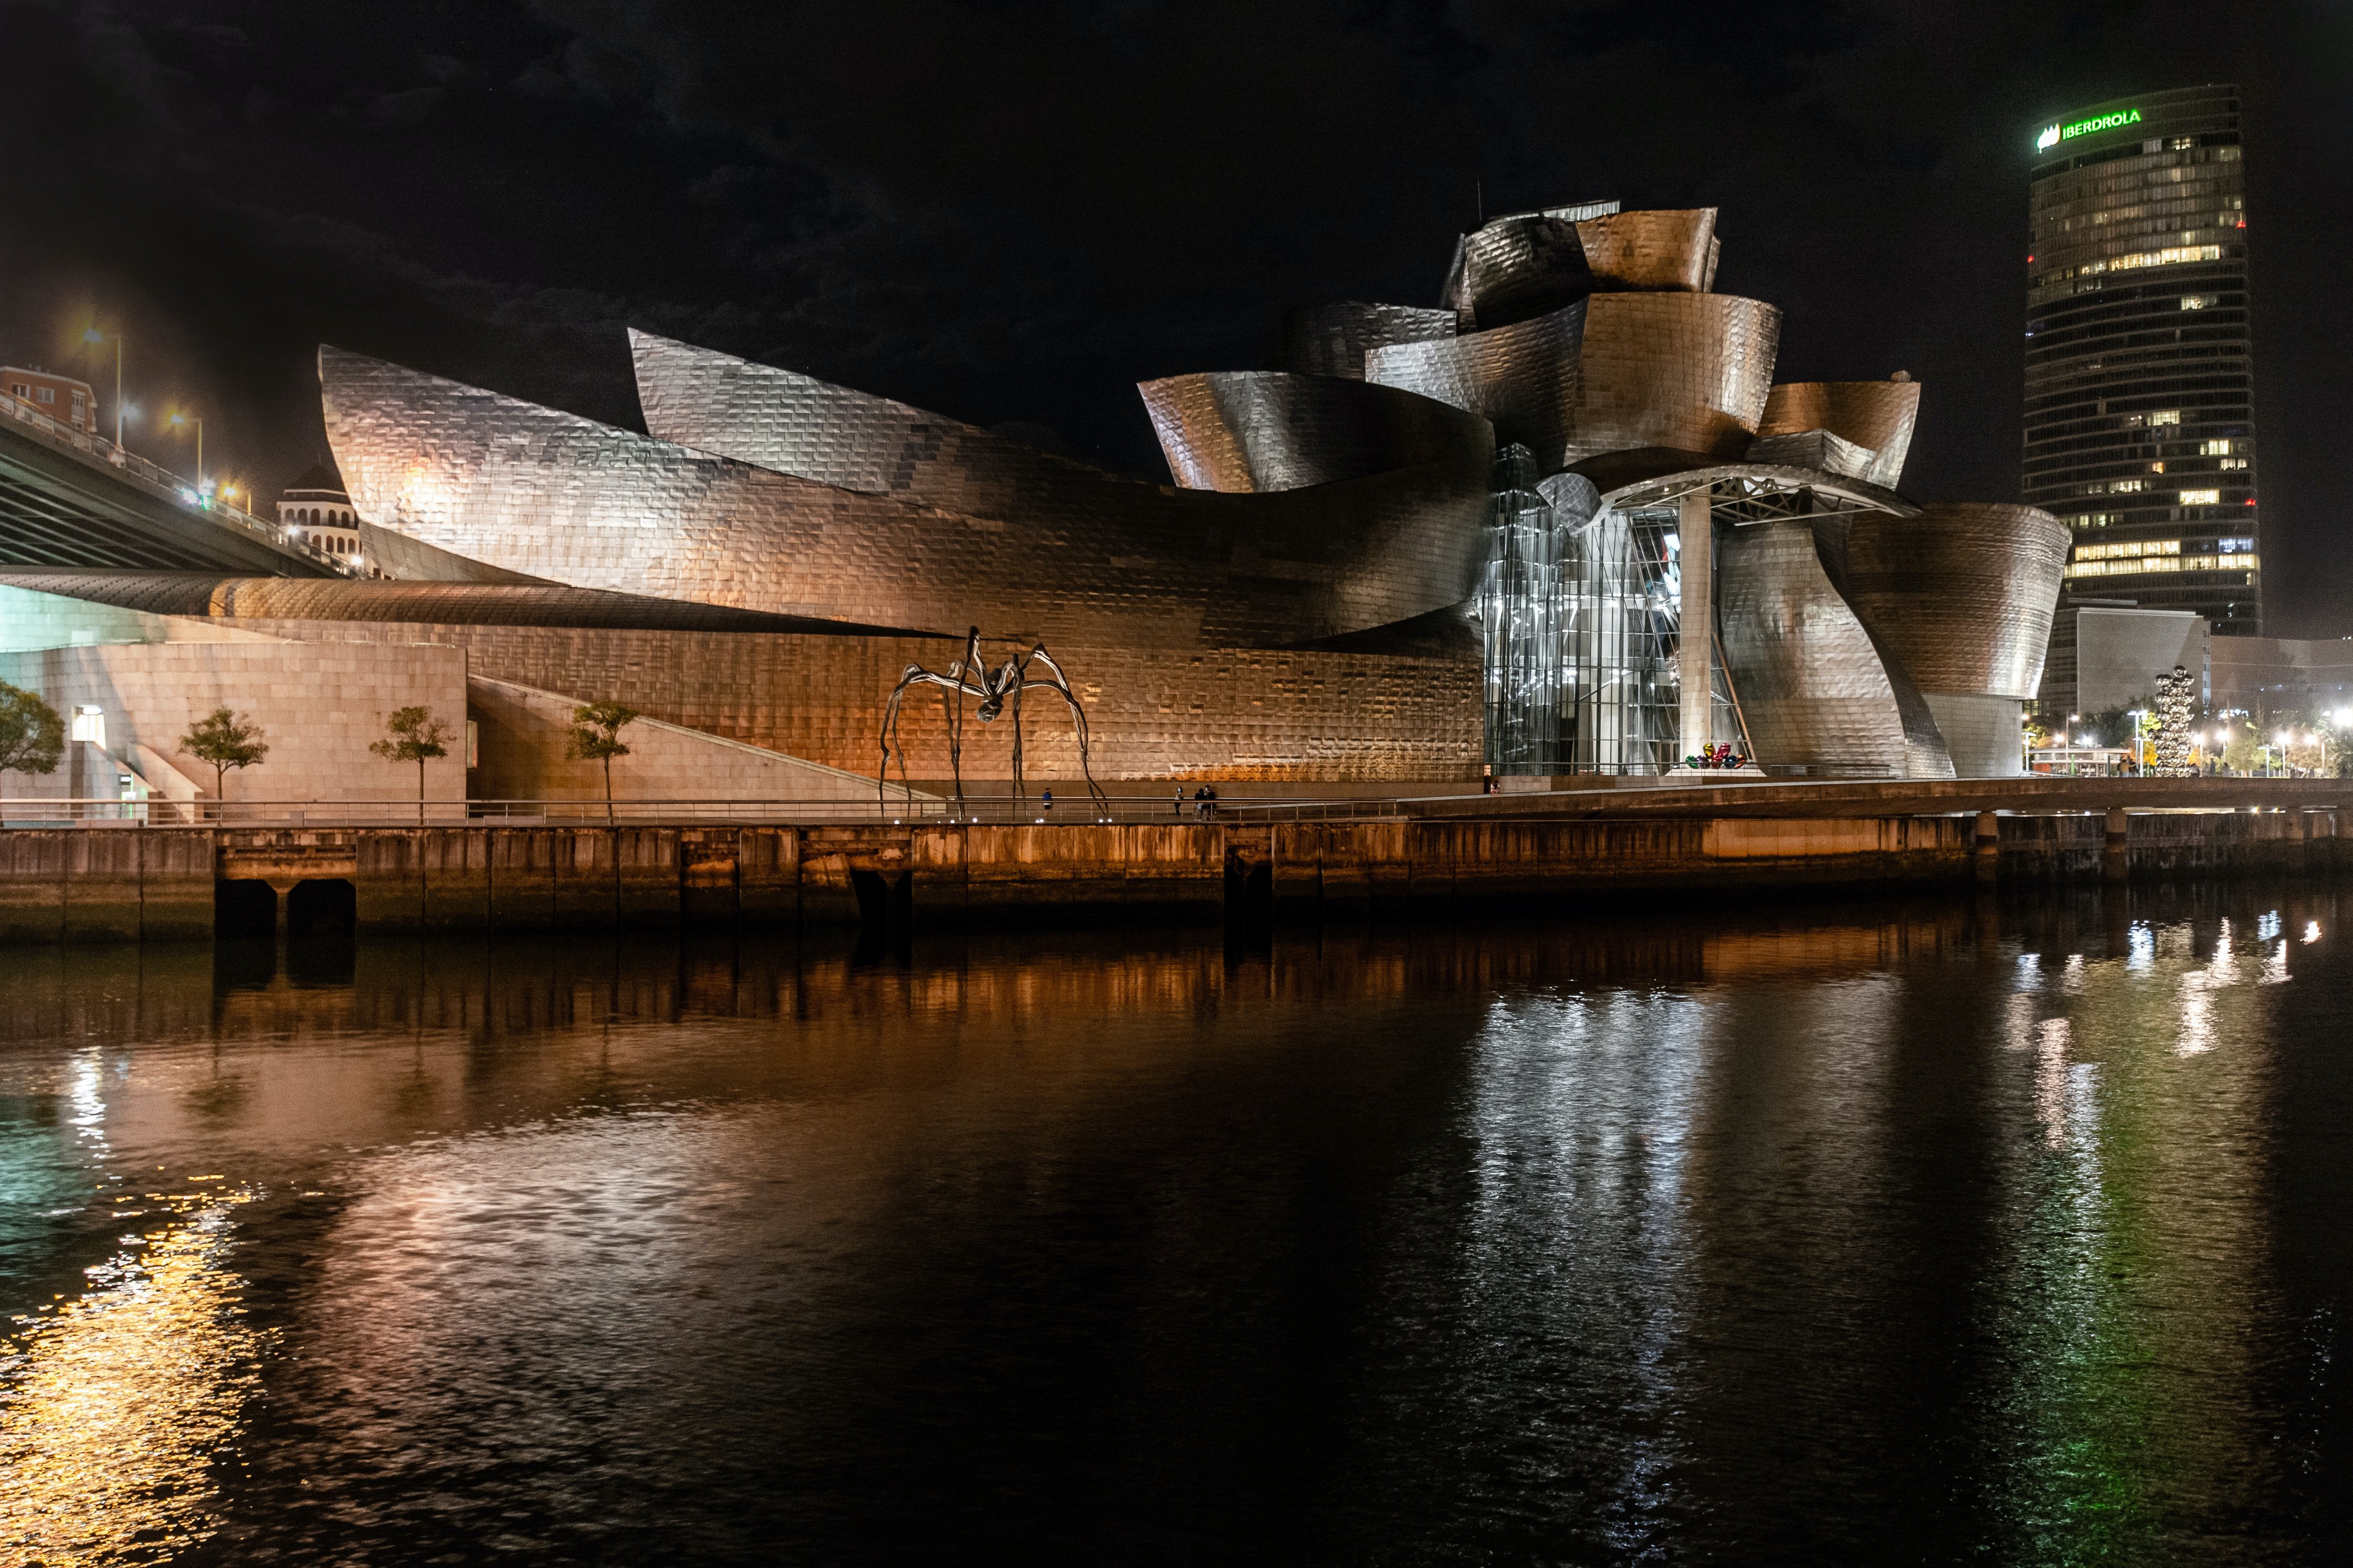 Nighttime photo of the Guggenheim Museum by the water in Bilbao, Spain